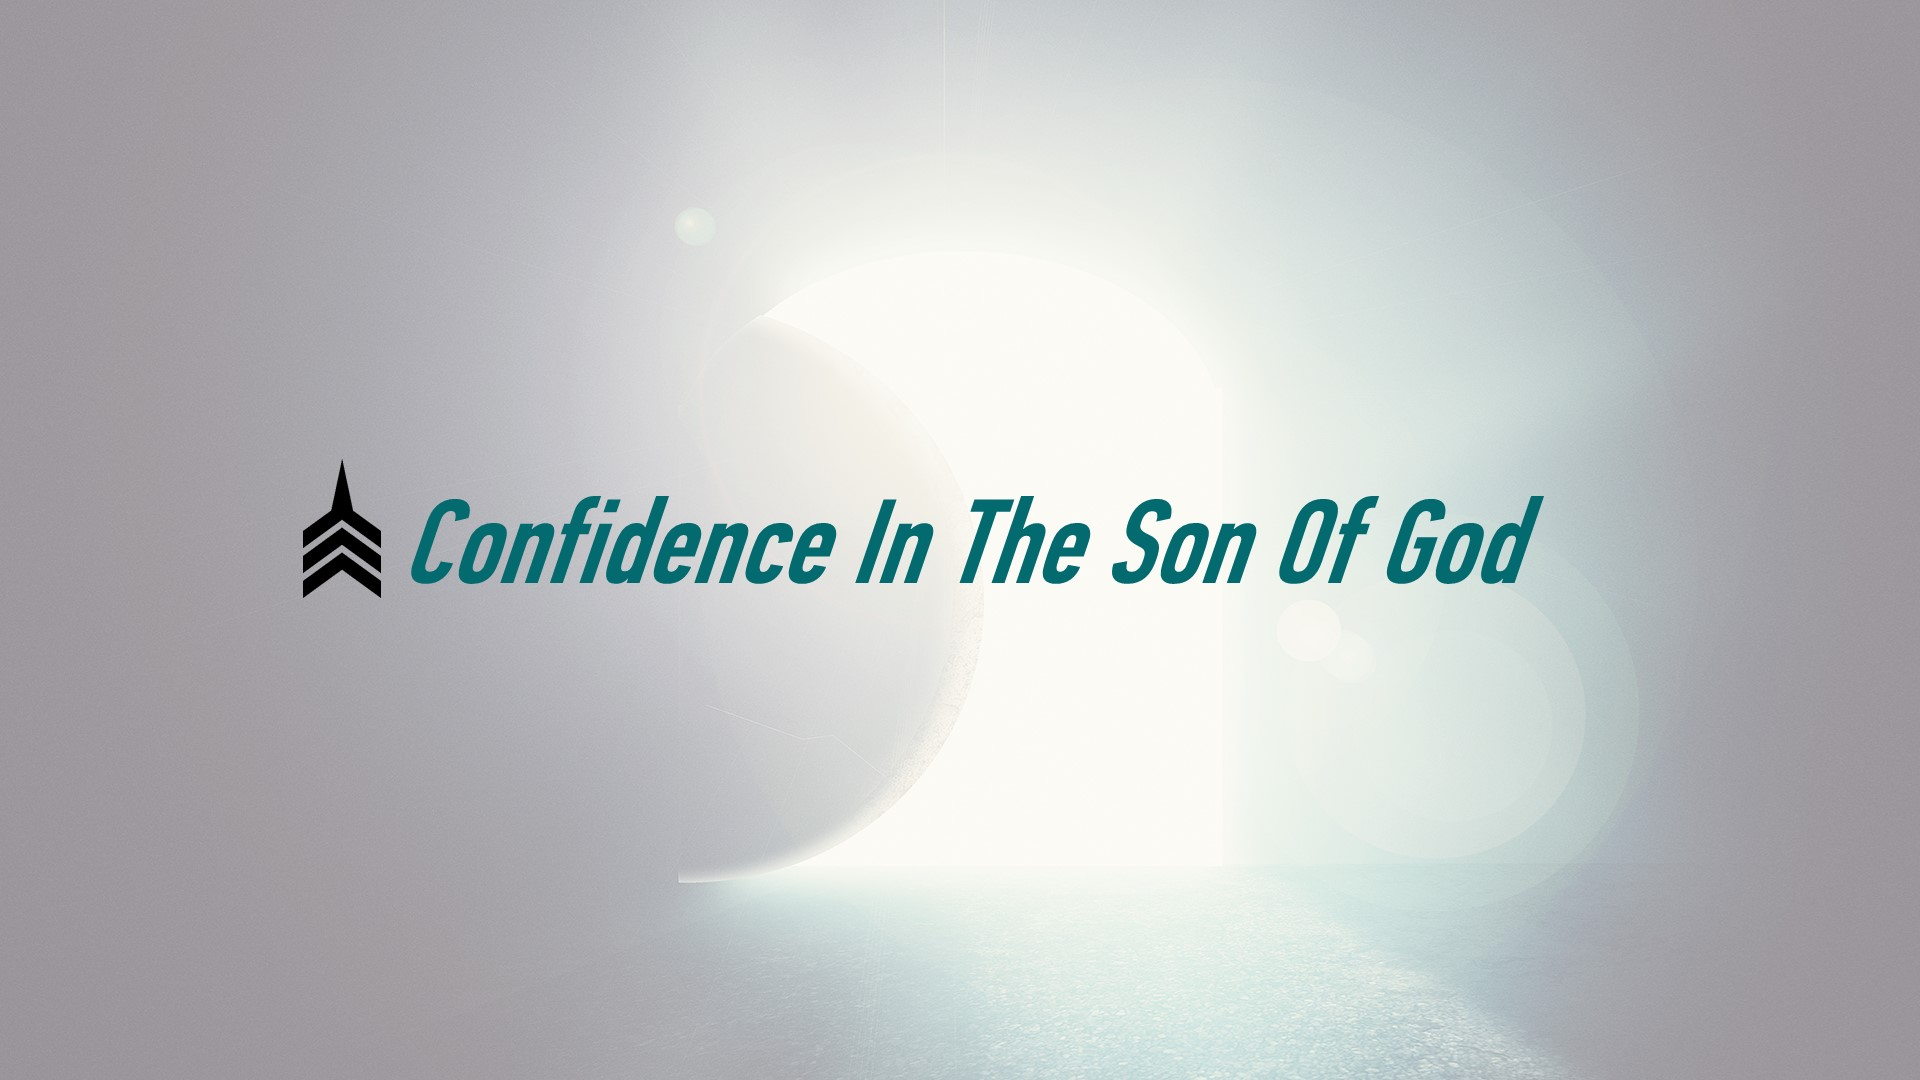 Confidence In The Son Of God.JPG